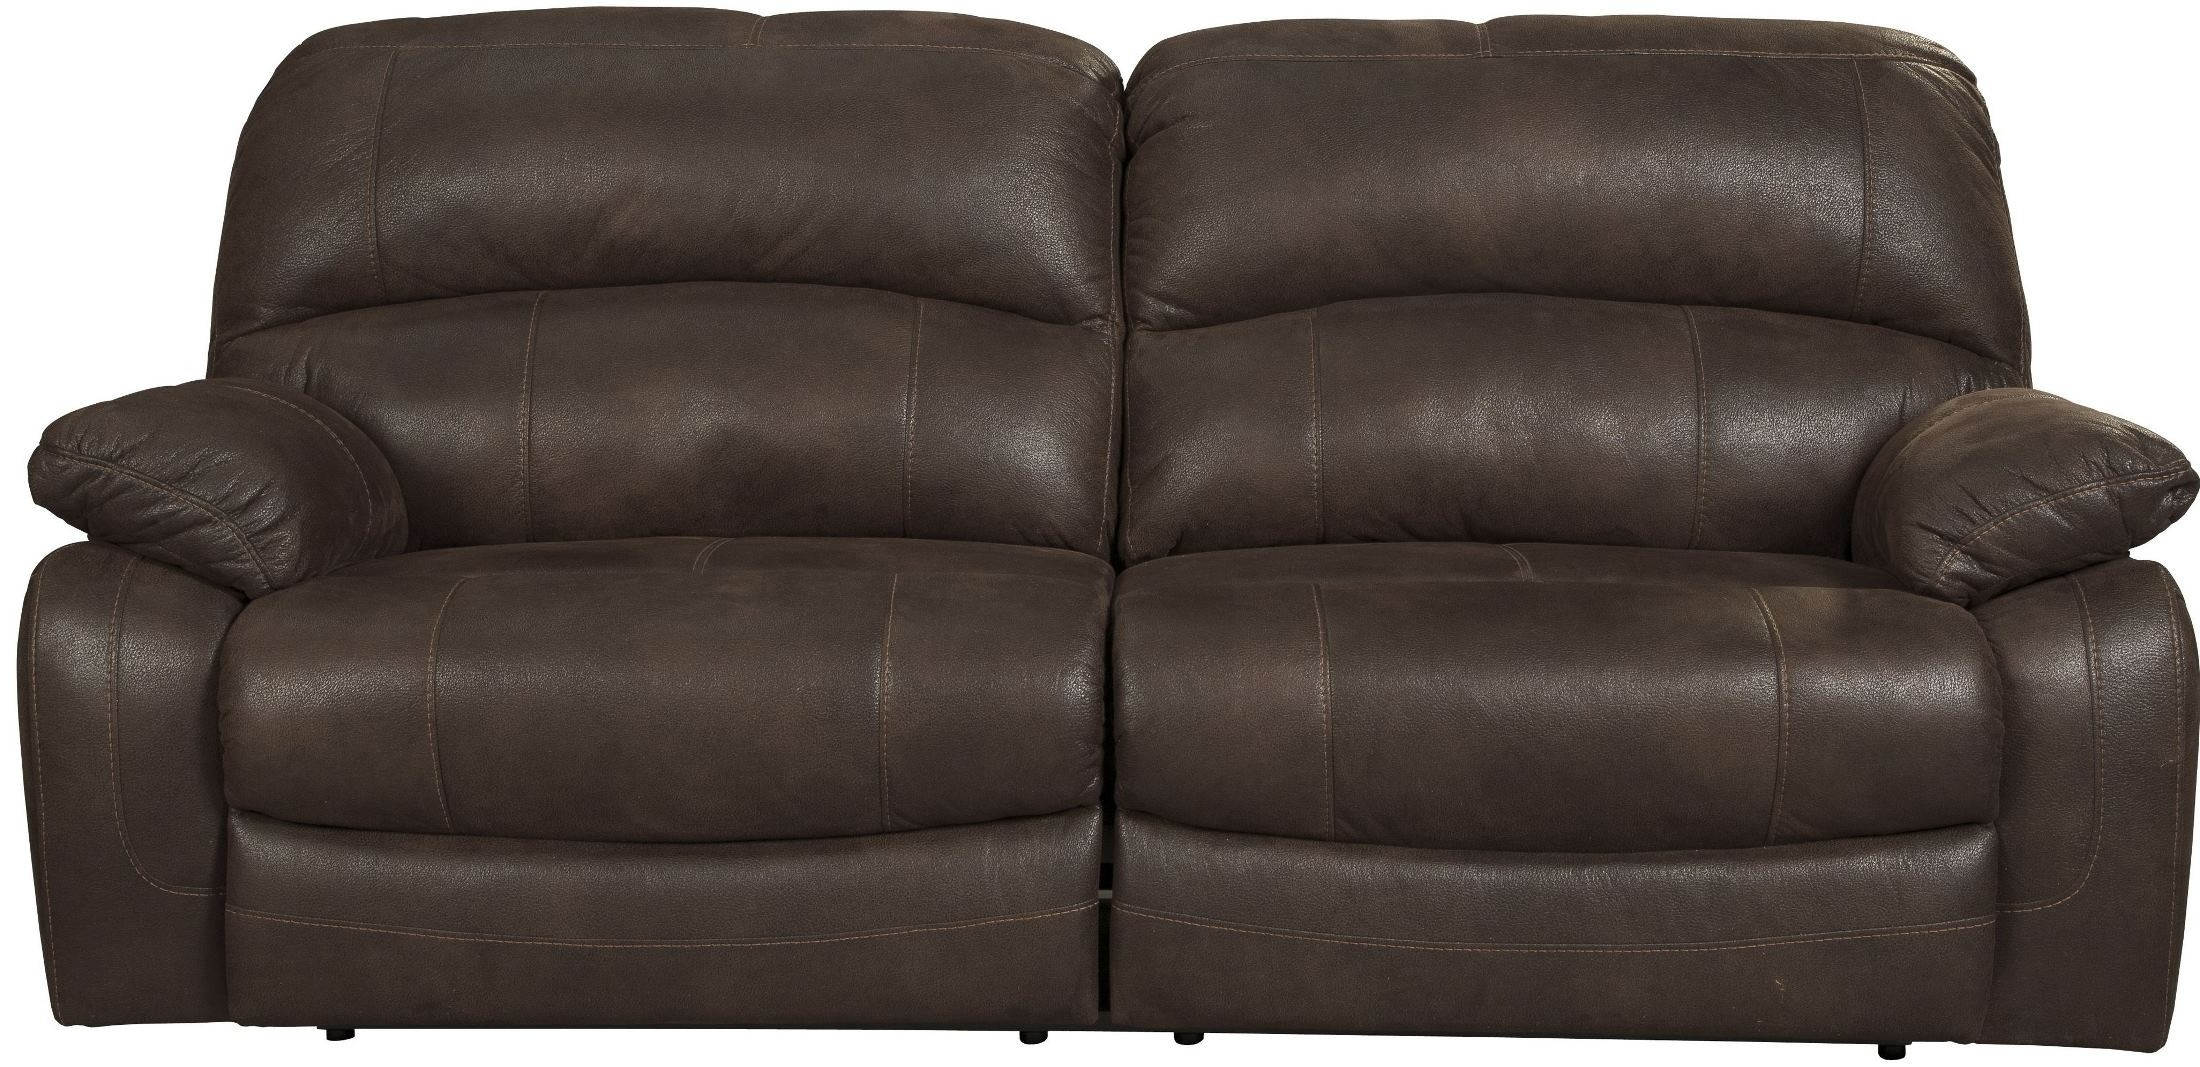 Zavier Truffle 2 Seat Power Reclining Sofa From Ashley (4290147 Pertaining To Widely Used 2 Seat Recliner Sofas (View 10 of 15)